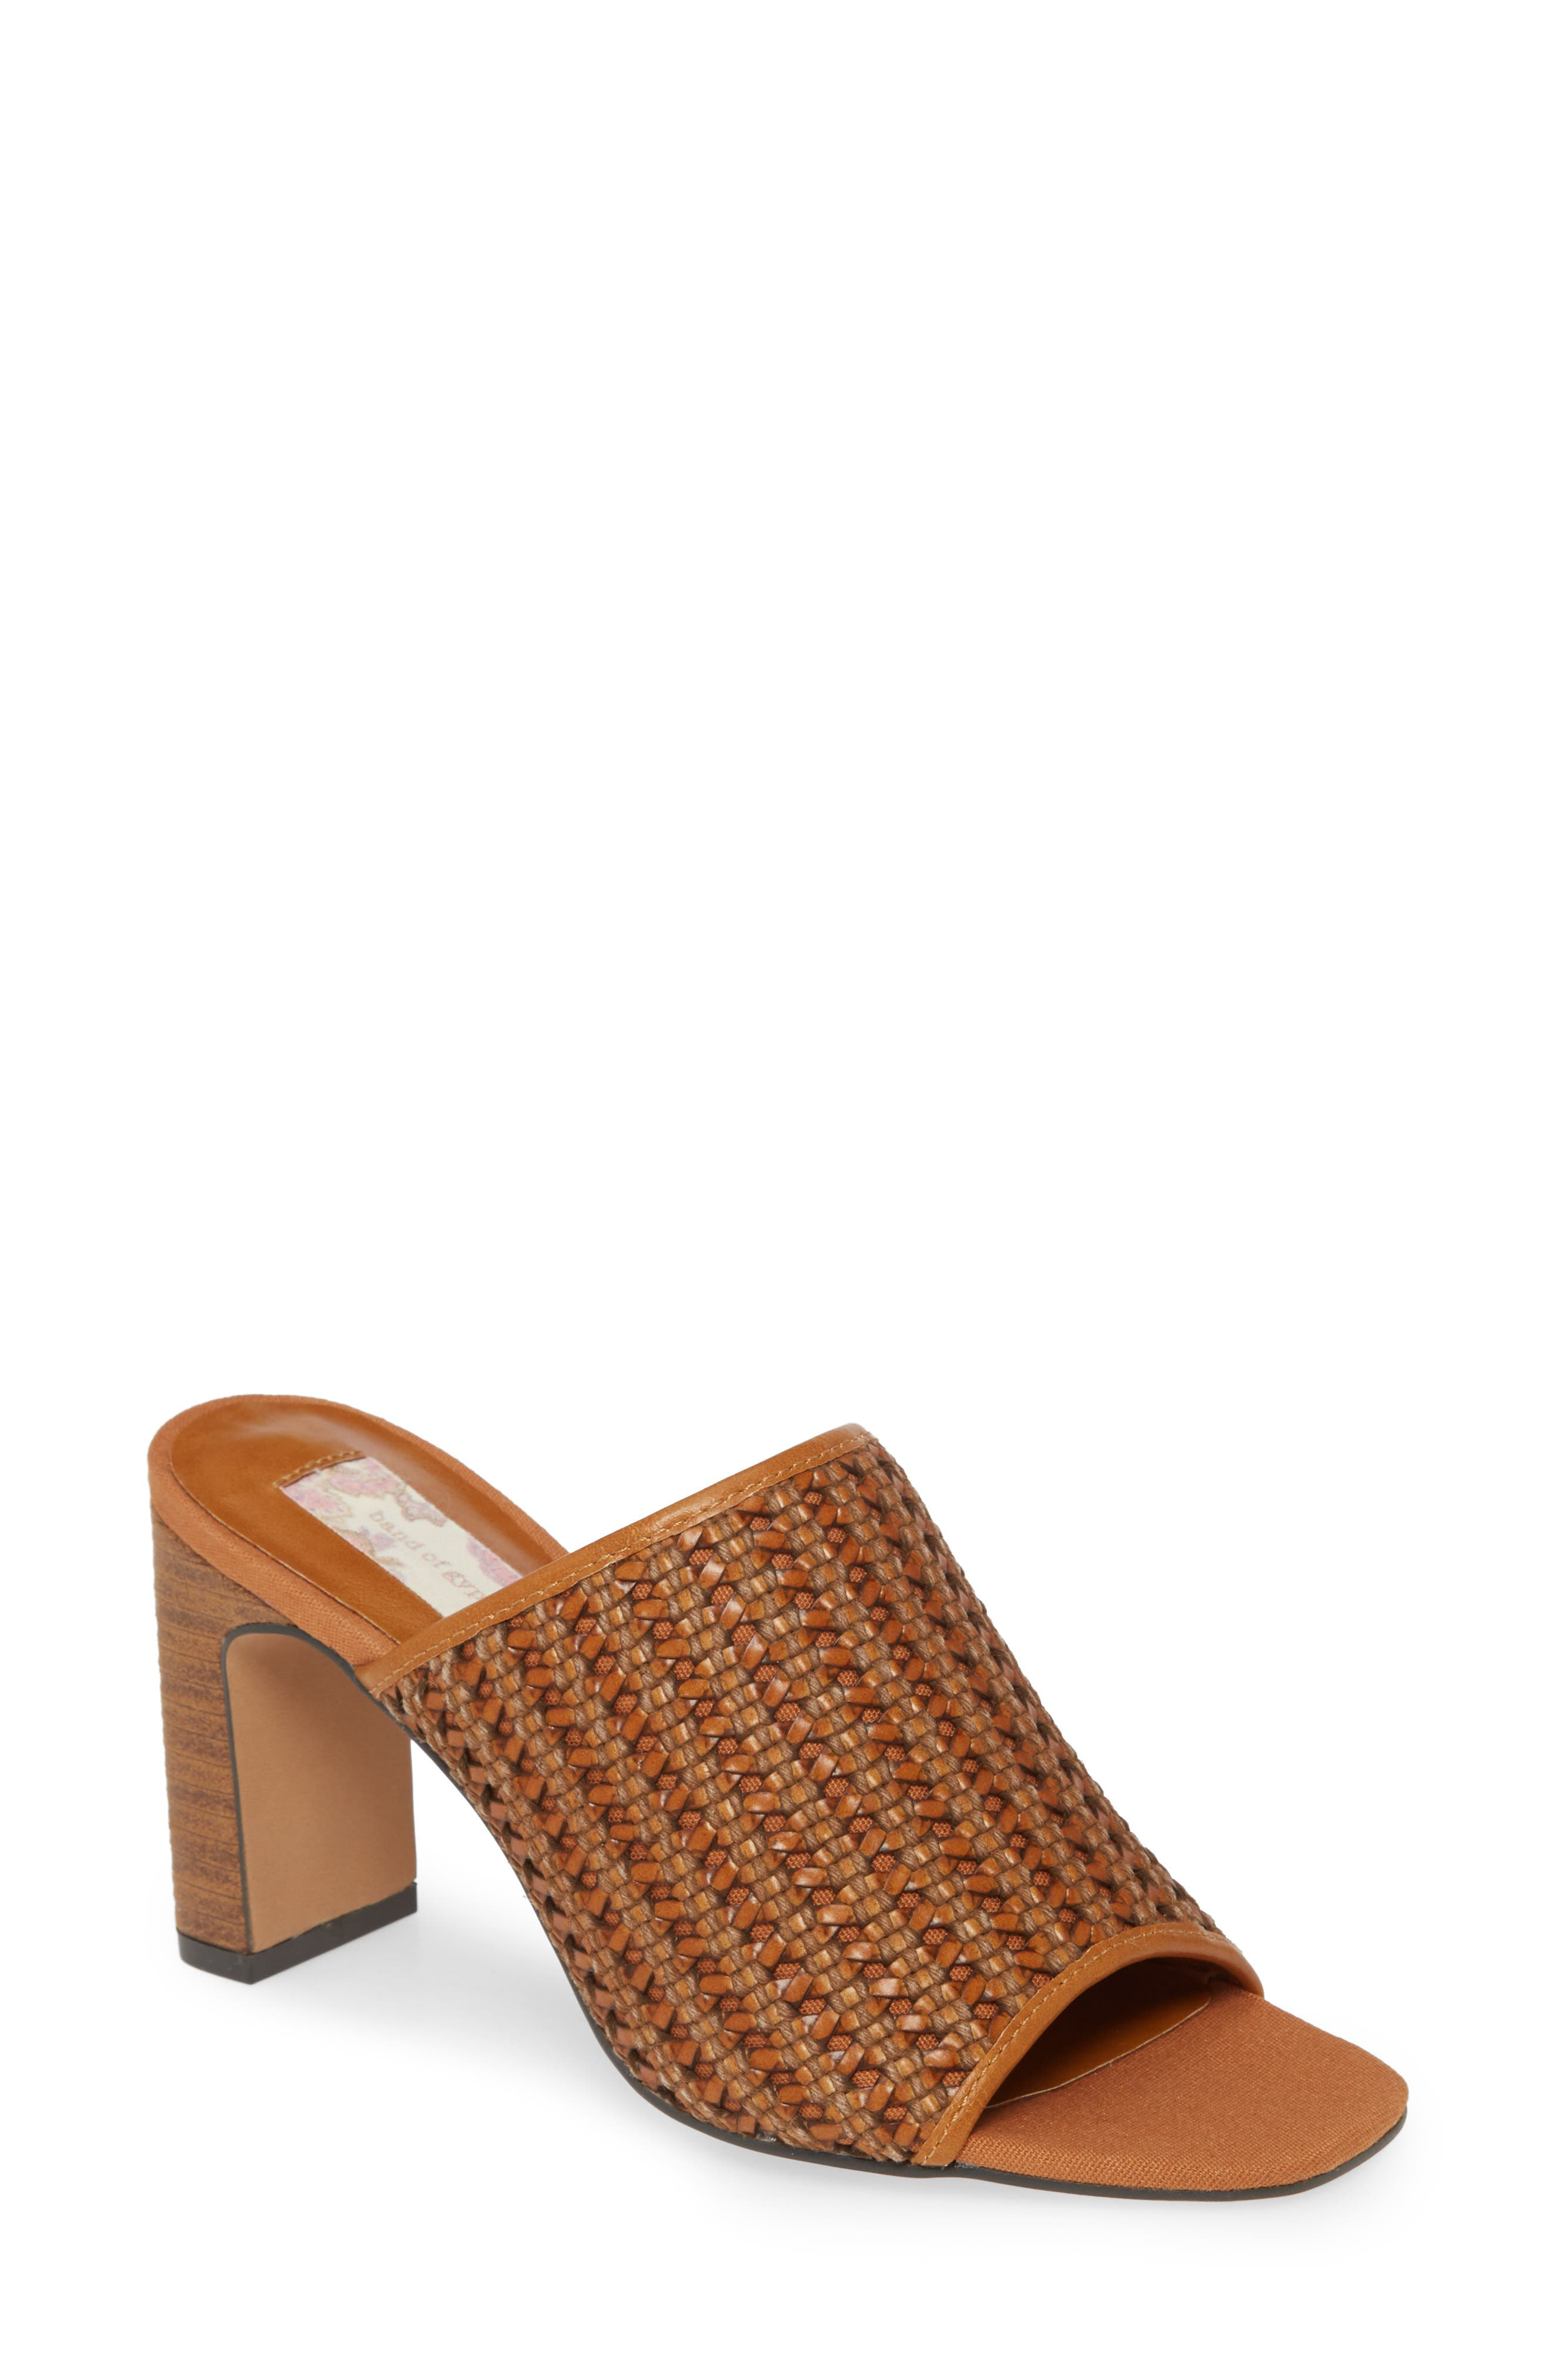 Full of boho-chic style, this sandal has a woven mixed-media upper and a tall heel with a stacked and weathered finish. Style Name: Band Of Gypsies Hermosa Woven Slide Sandal (Women). Style Number: 5982374. Available in stores.